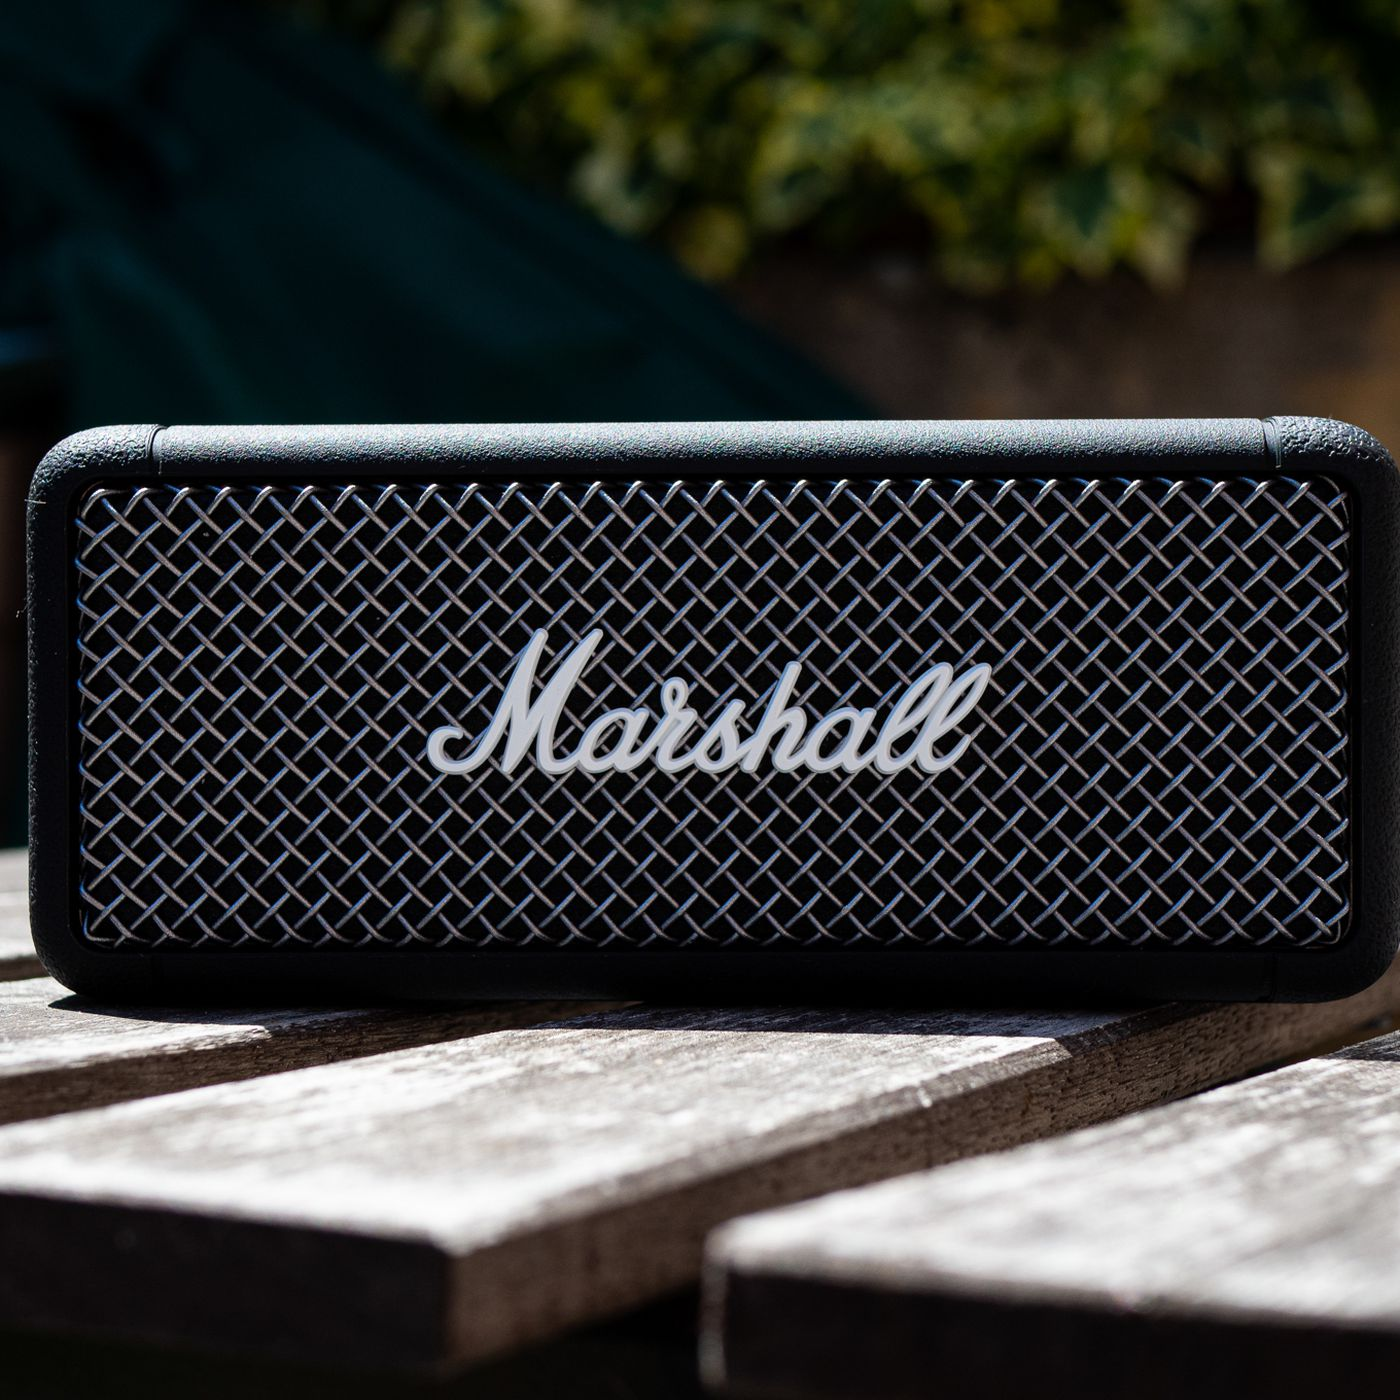 Marshall Emberton review: a rugged, refined Bluetooth speaker